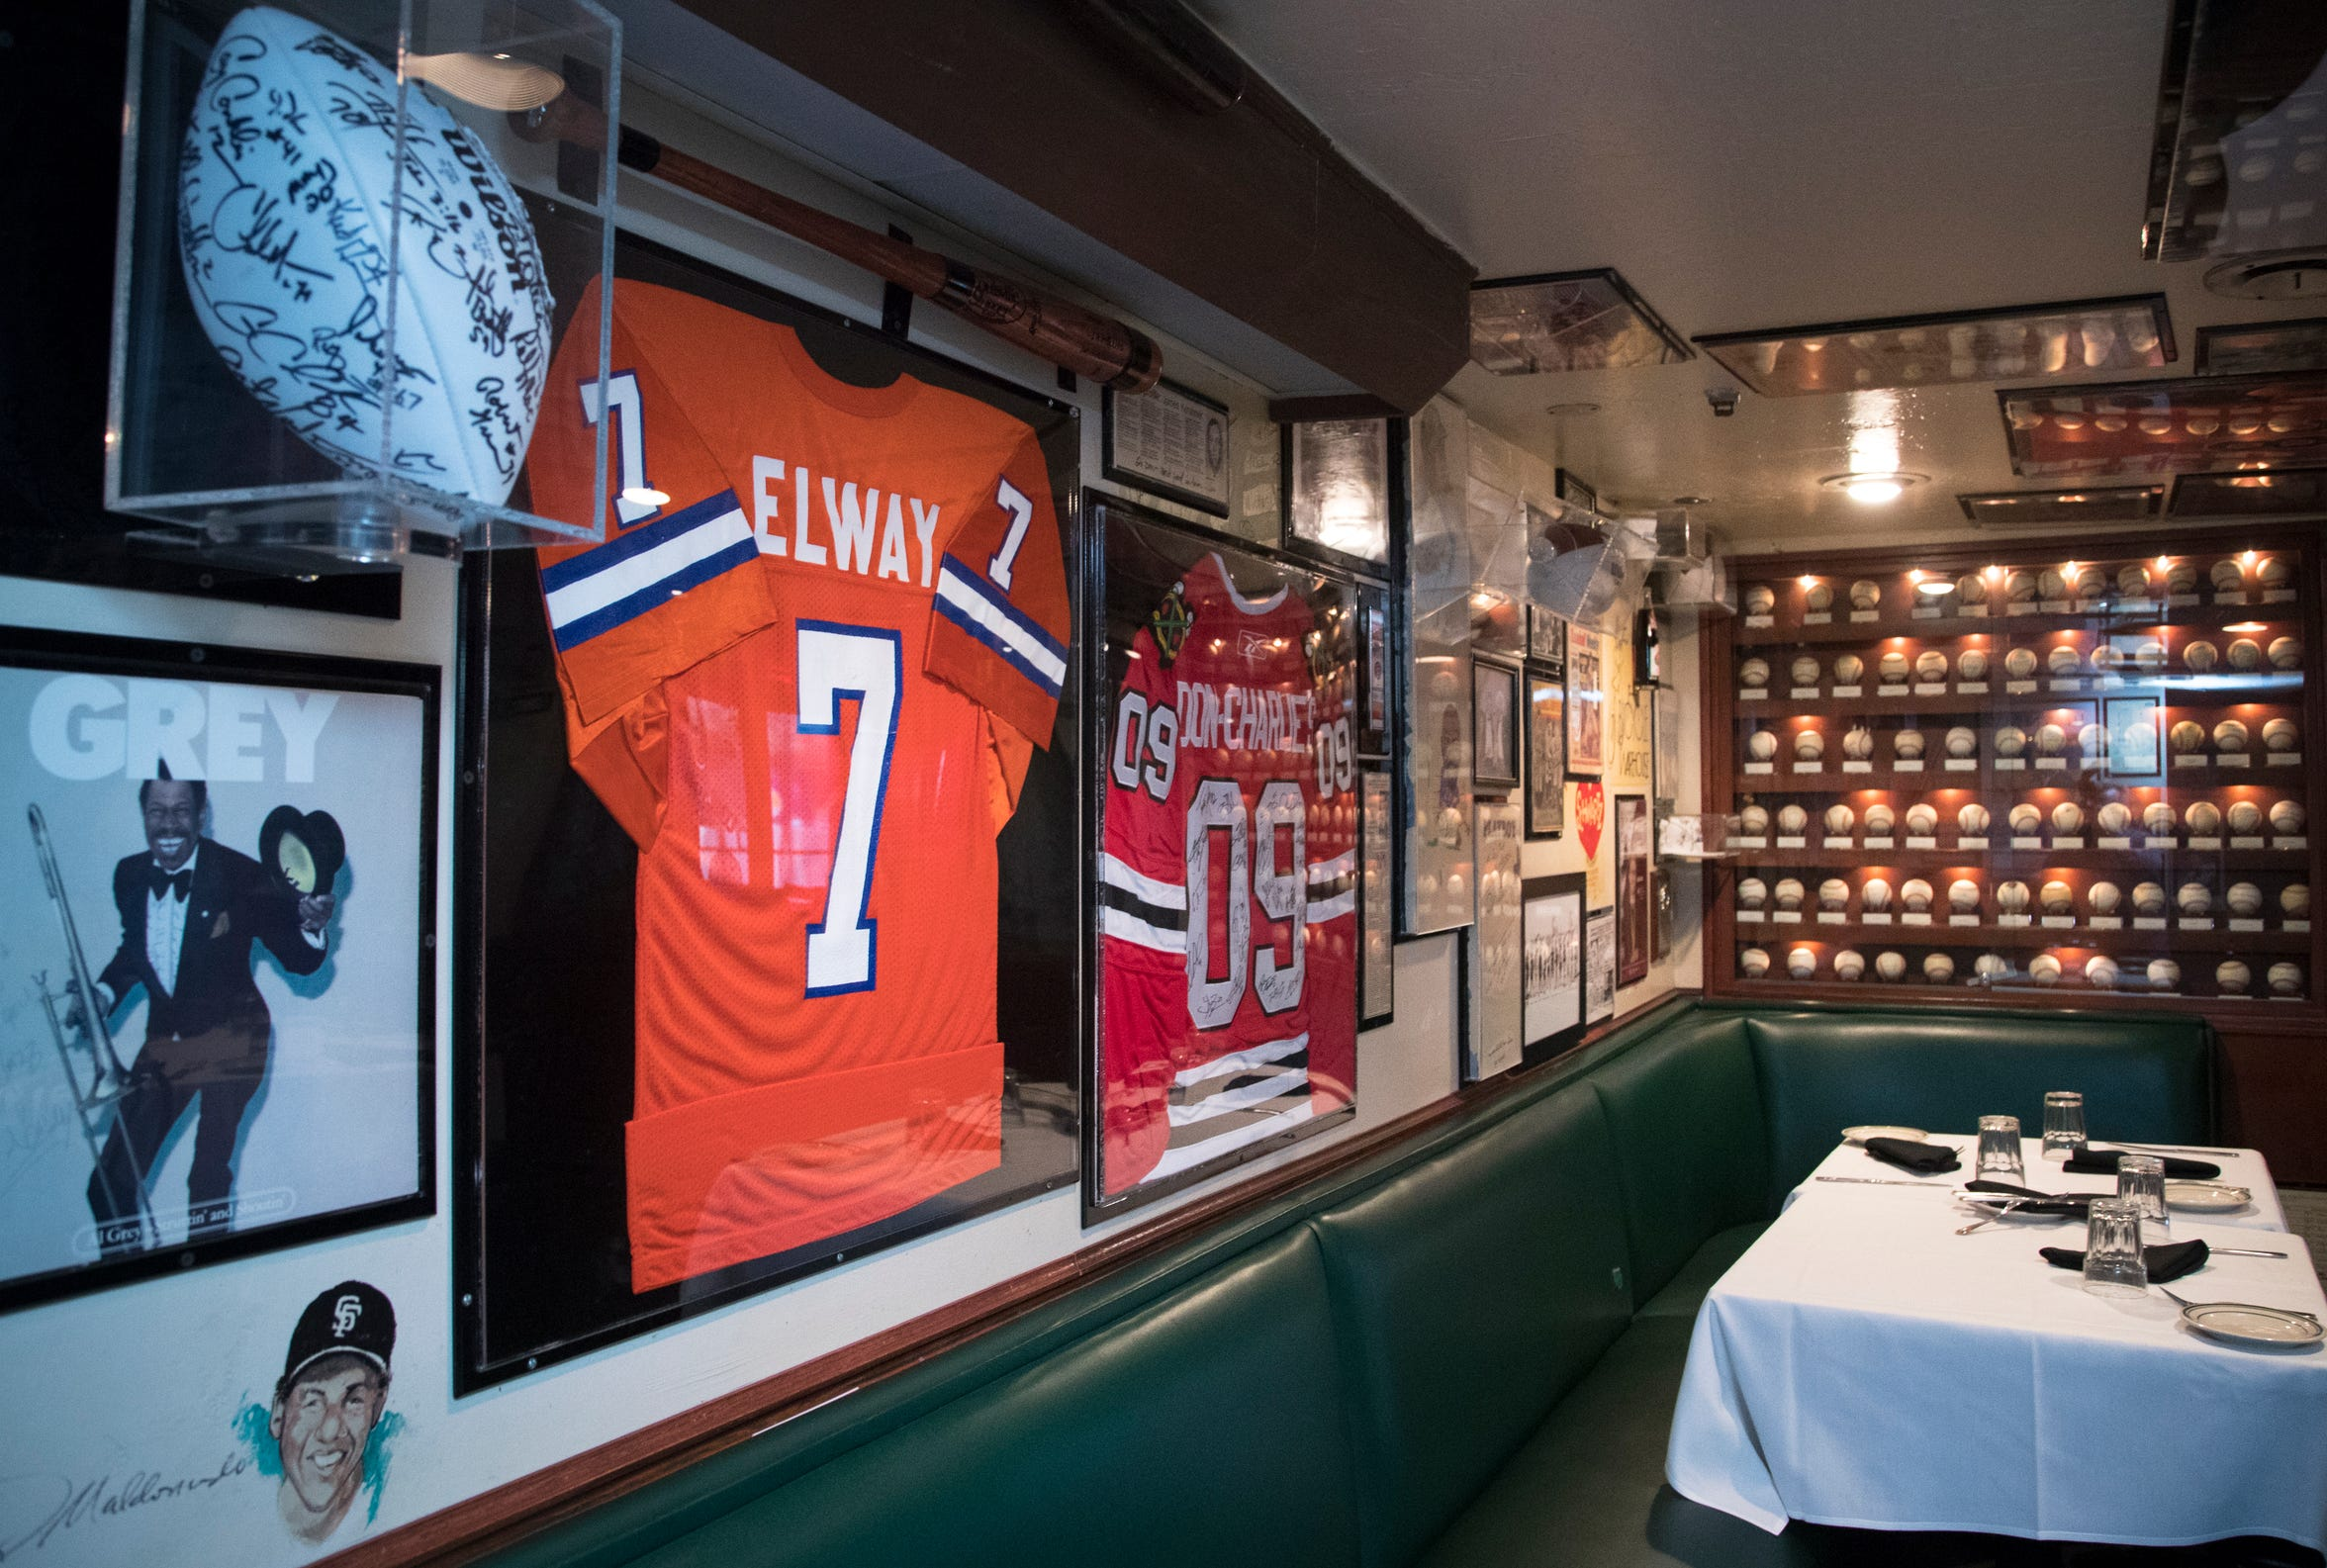 John Elway's jersey is seen Feb. 27, 2019, at Don & Charlie's, 7501 E. Camelback Road, Scottsdale.